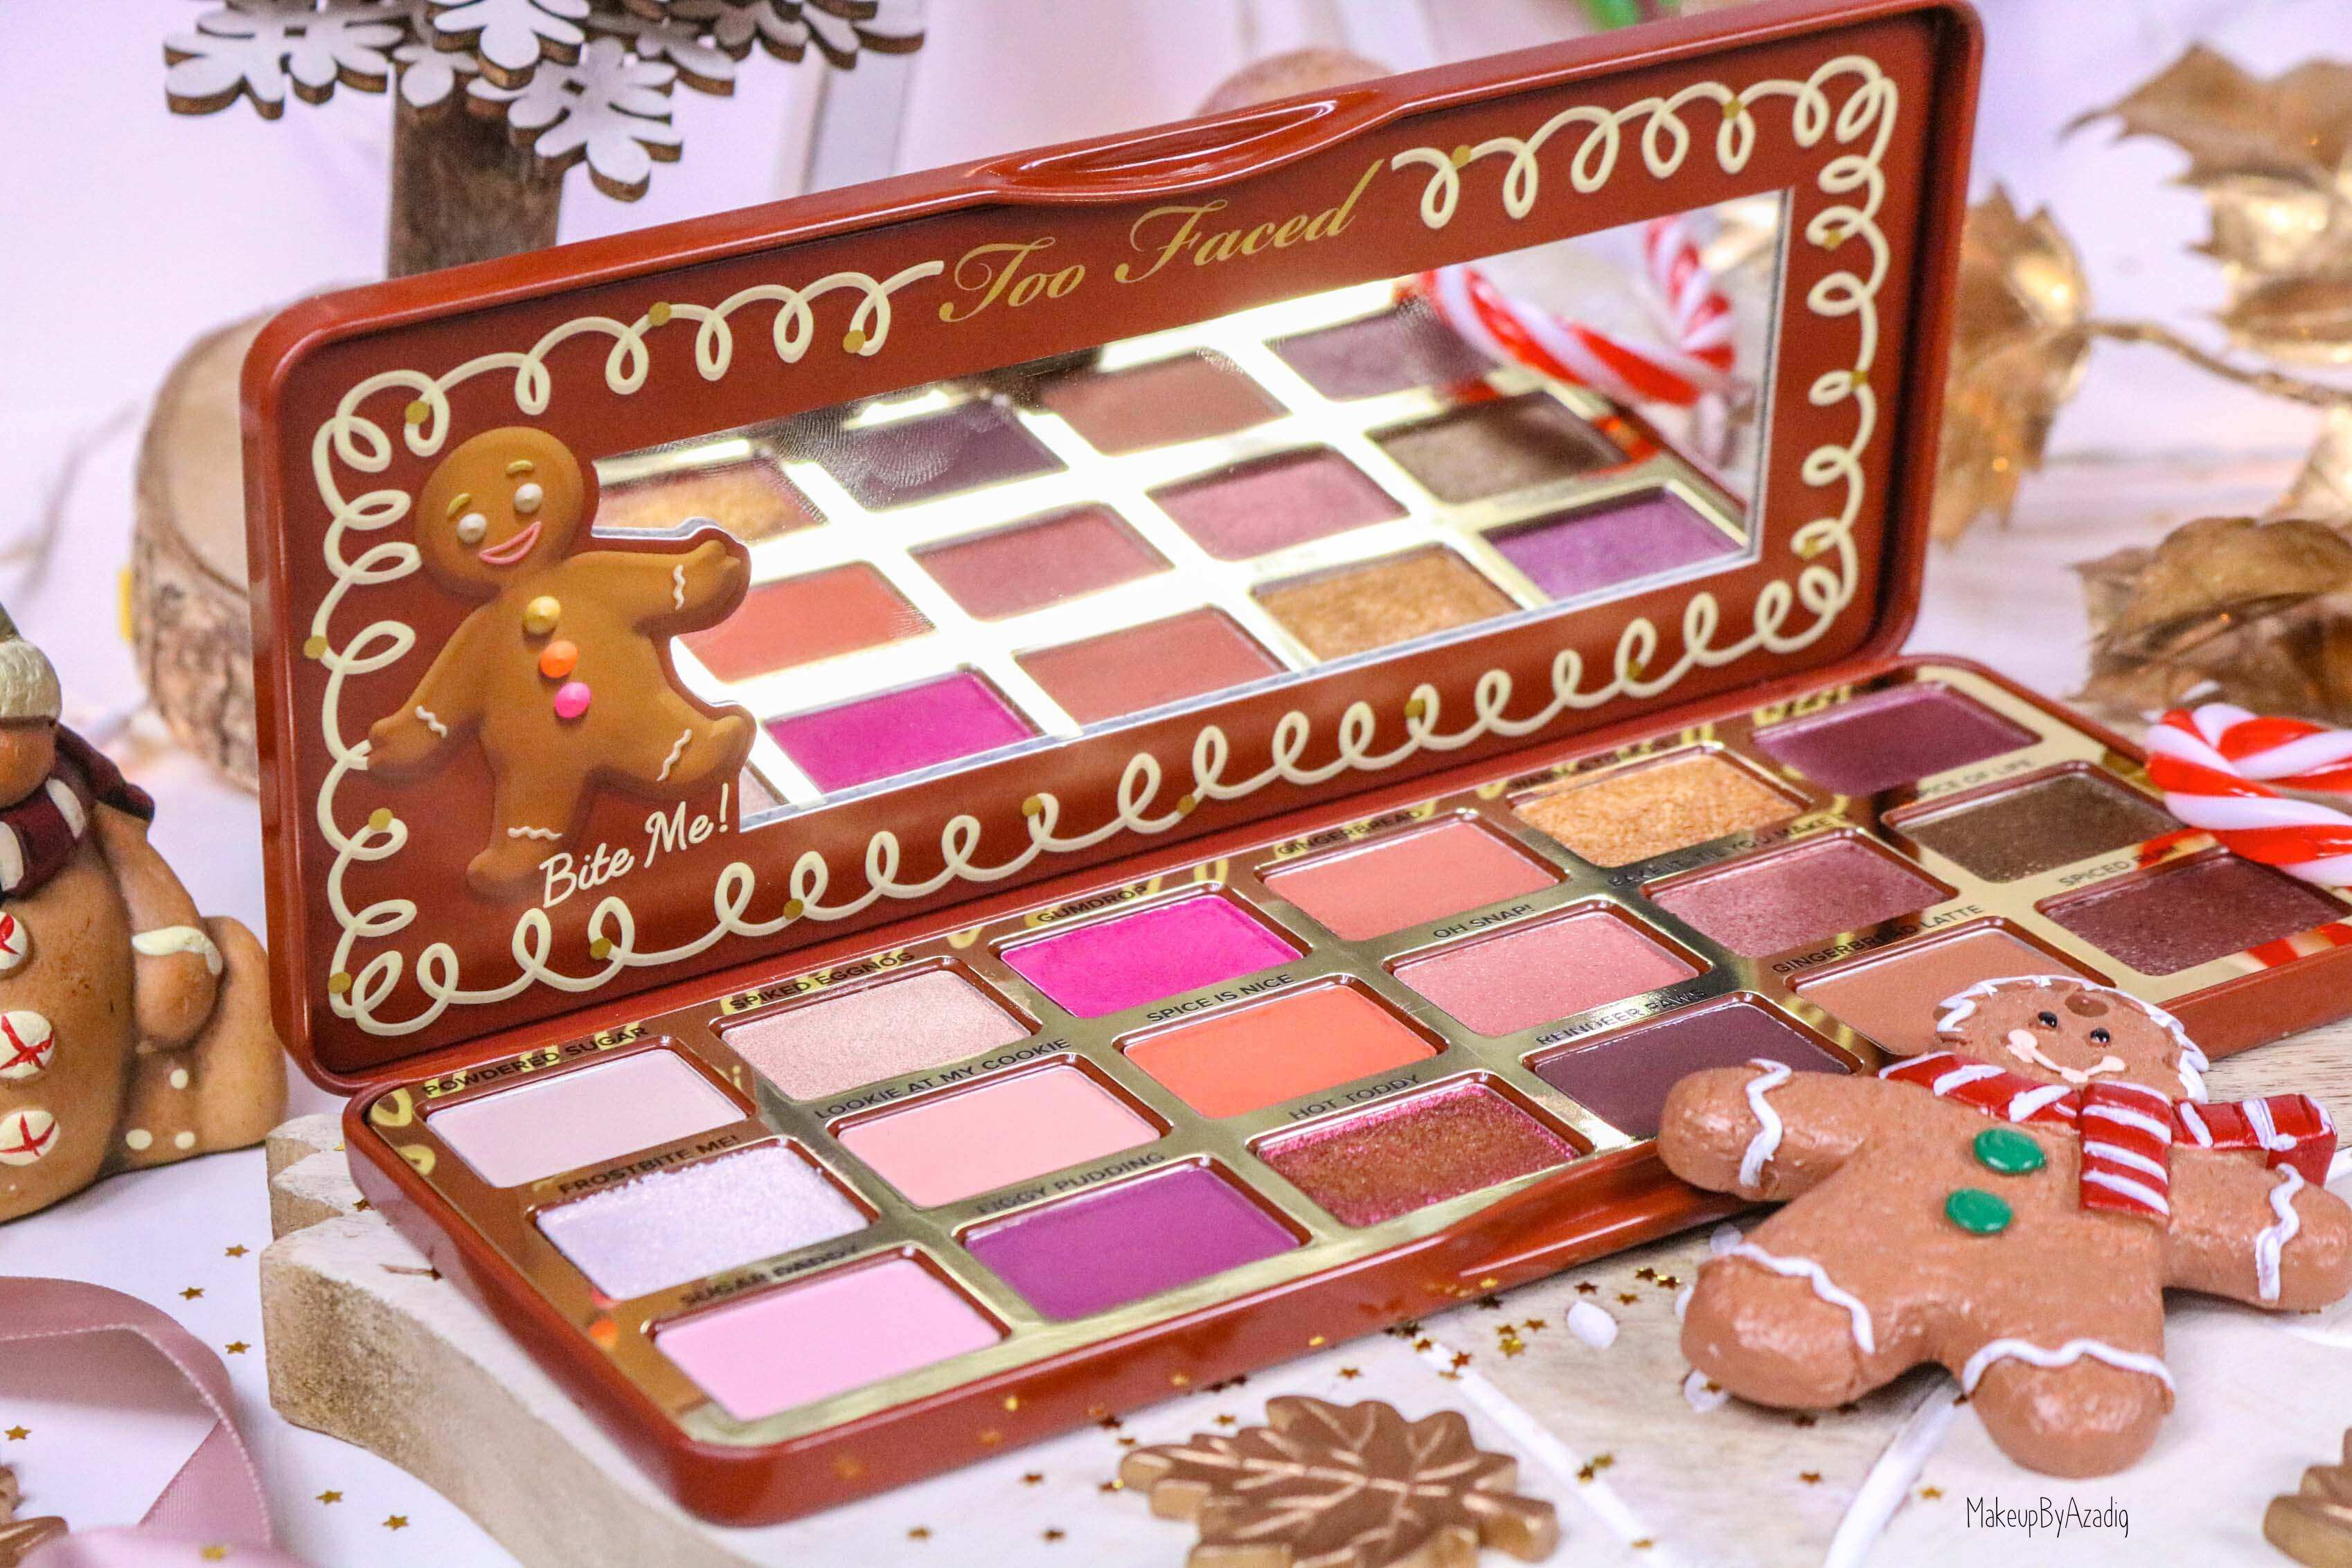 revue-palette-too-faced-gingerbread-spice-noel-france-makeupbyazadig-avis-prix-swatch-cute-review